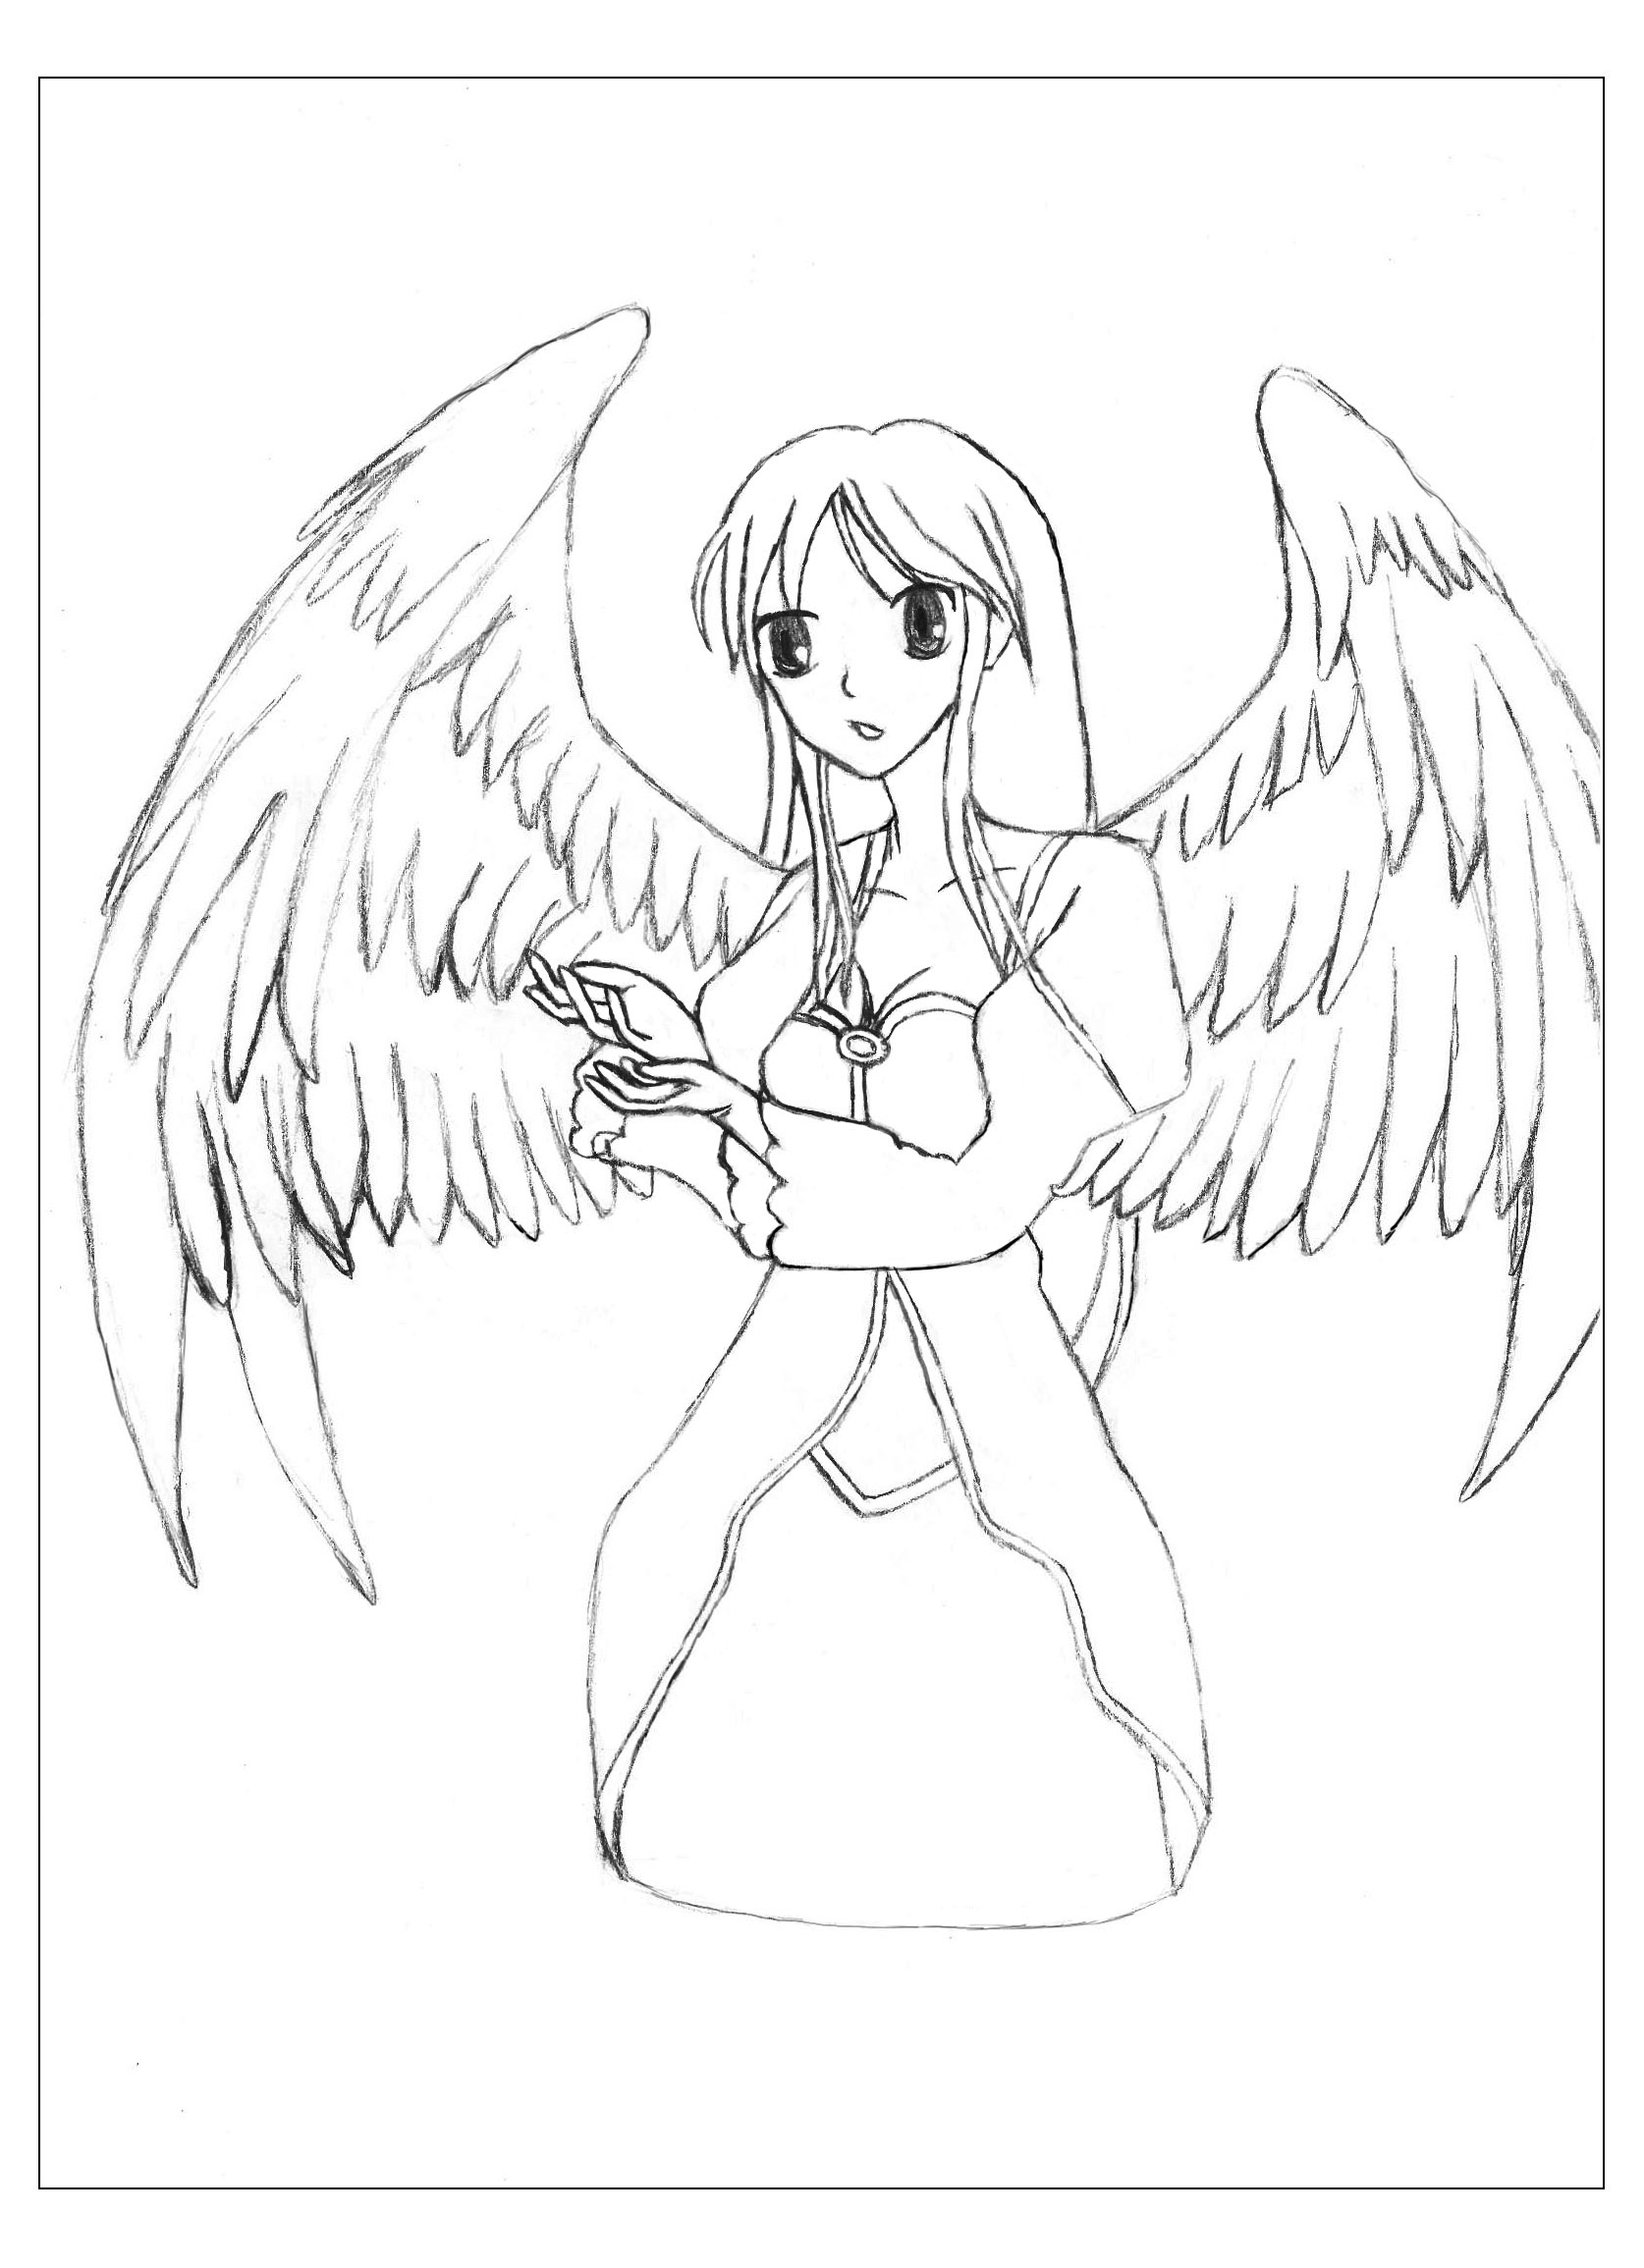 Manga Angel with beautiful wings